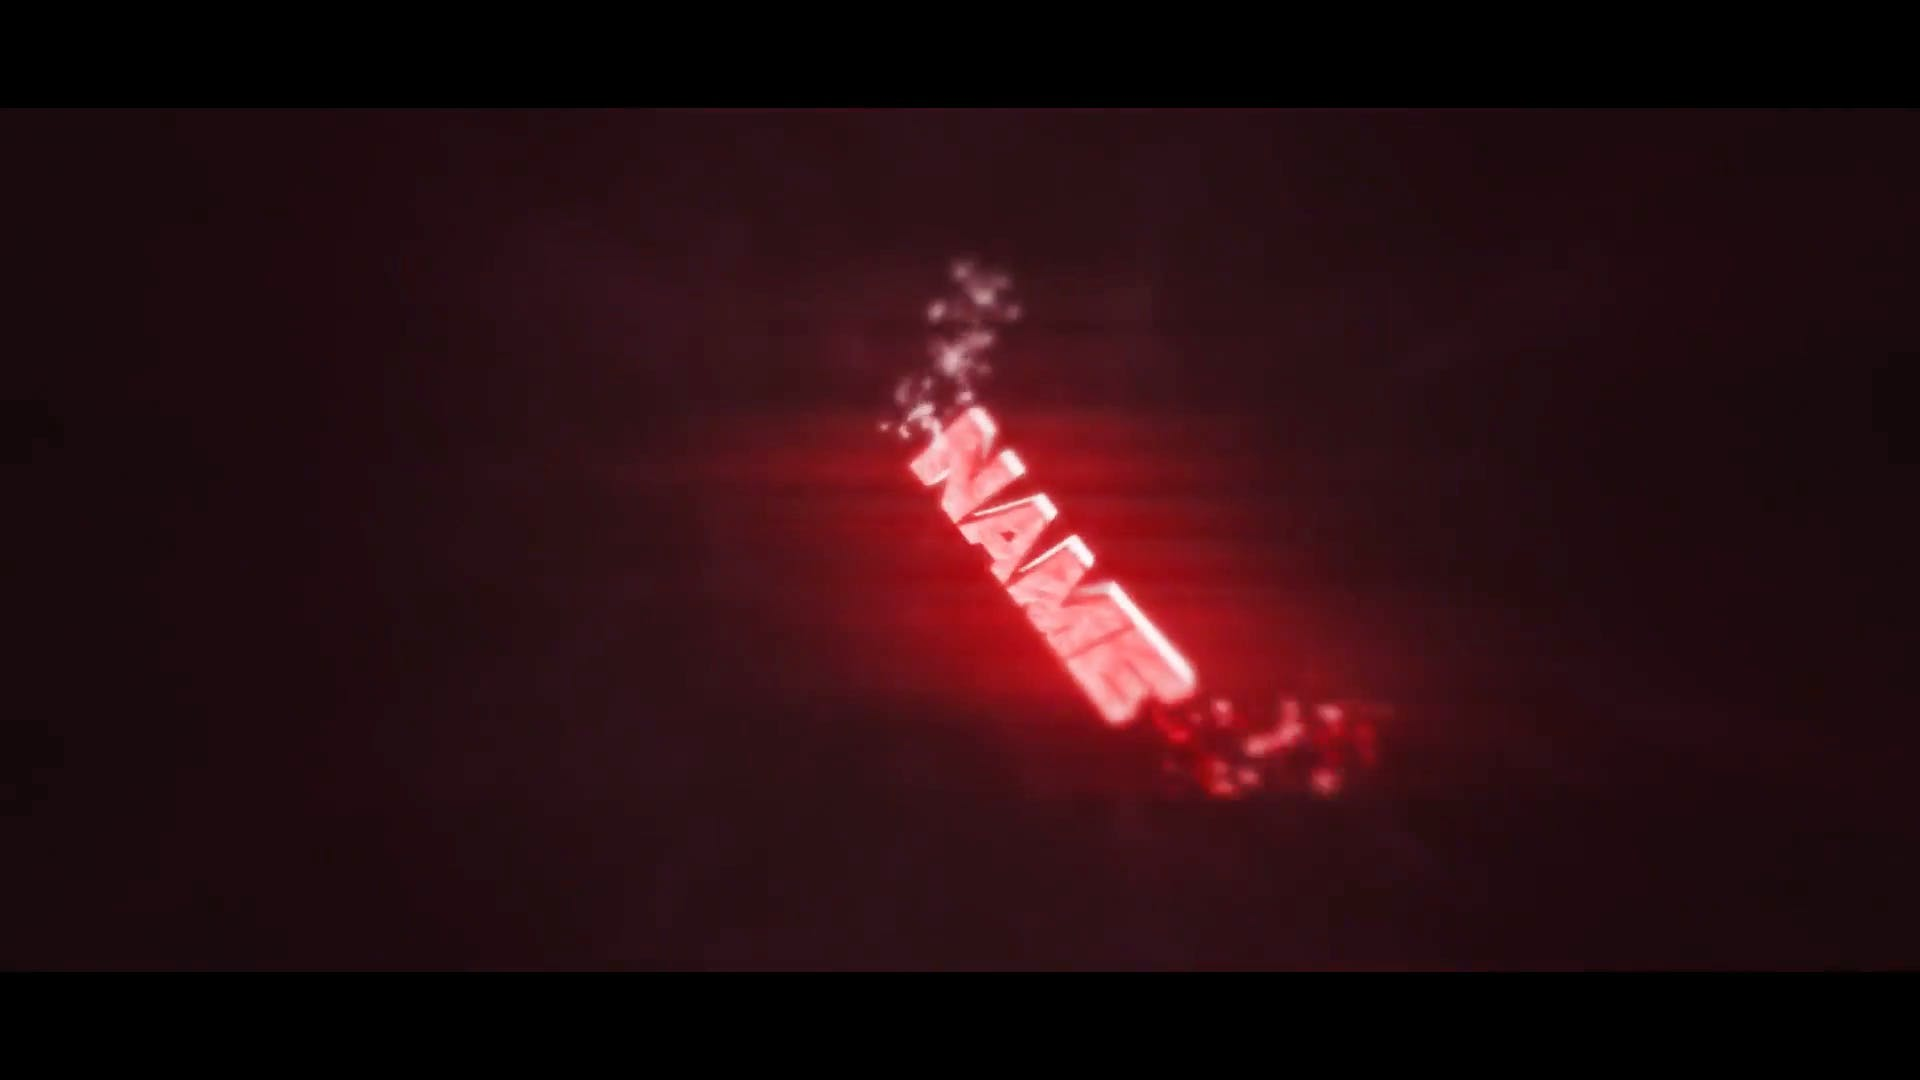 Dark Pulsation Particles C4D & AE Intro Template FREE DOWNLOAD